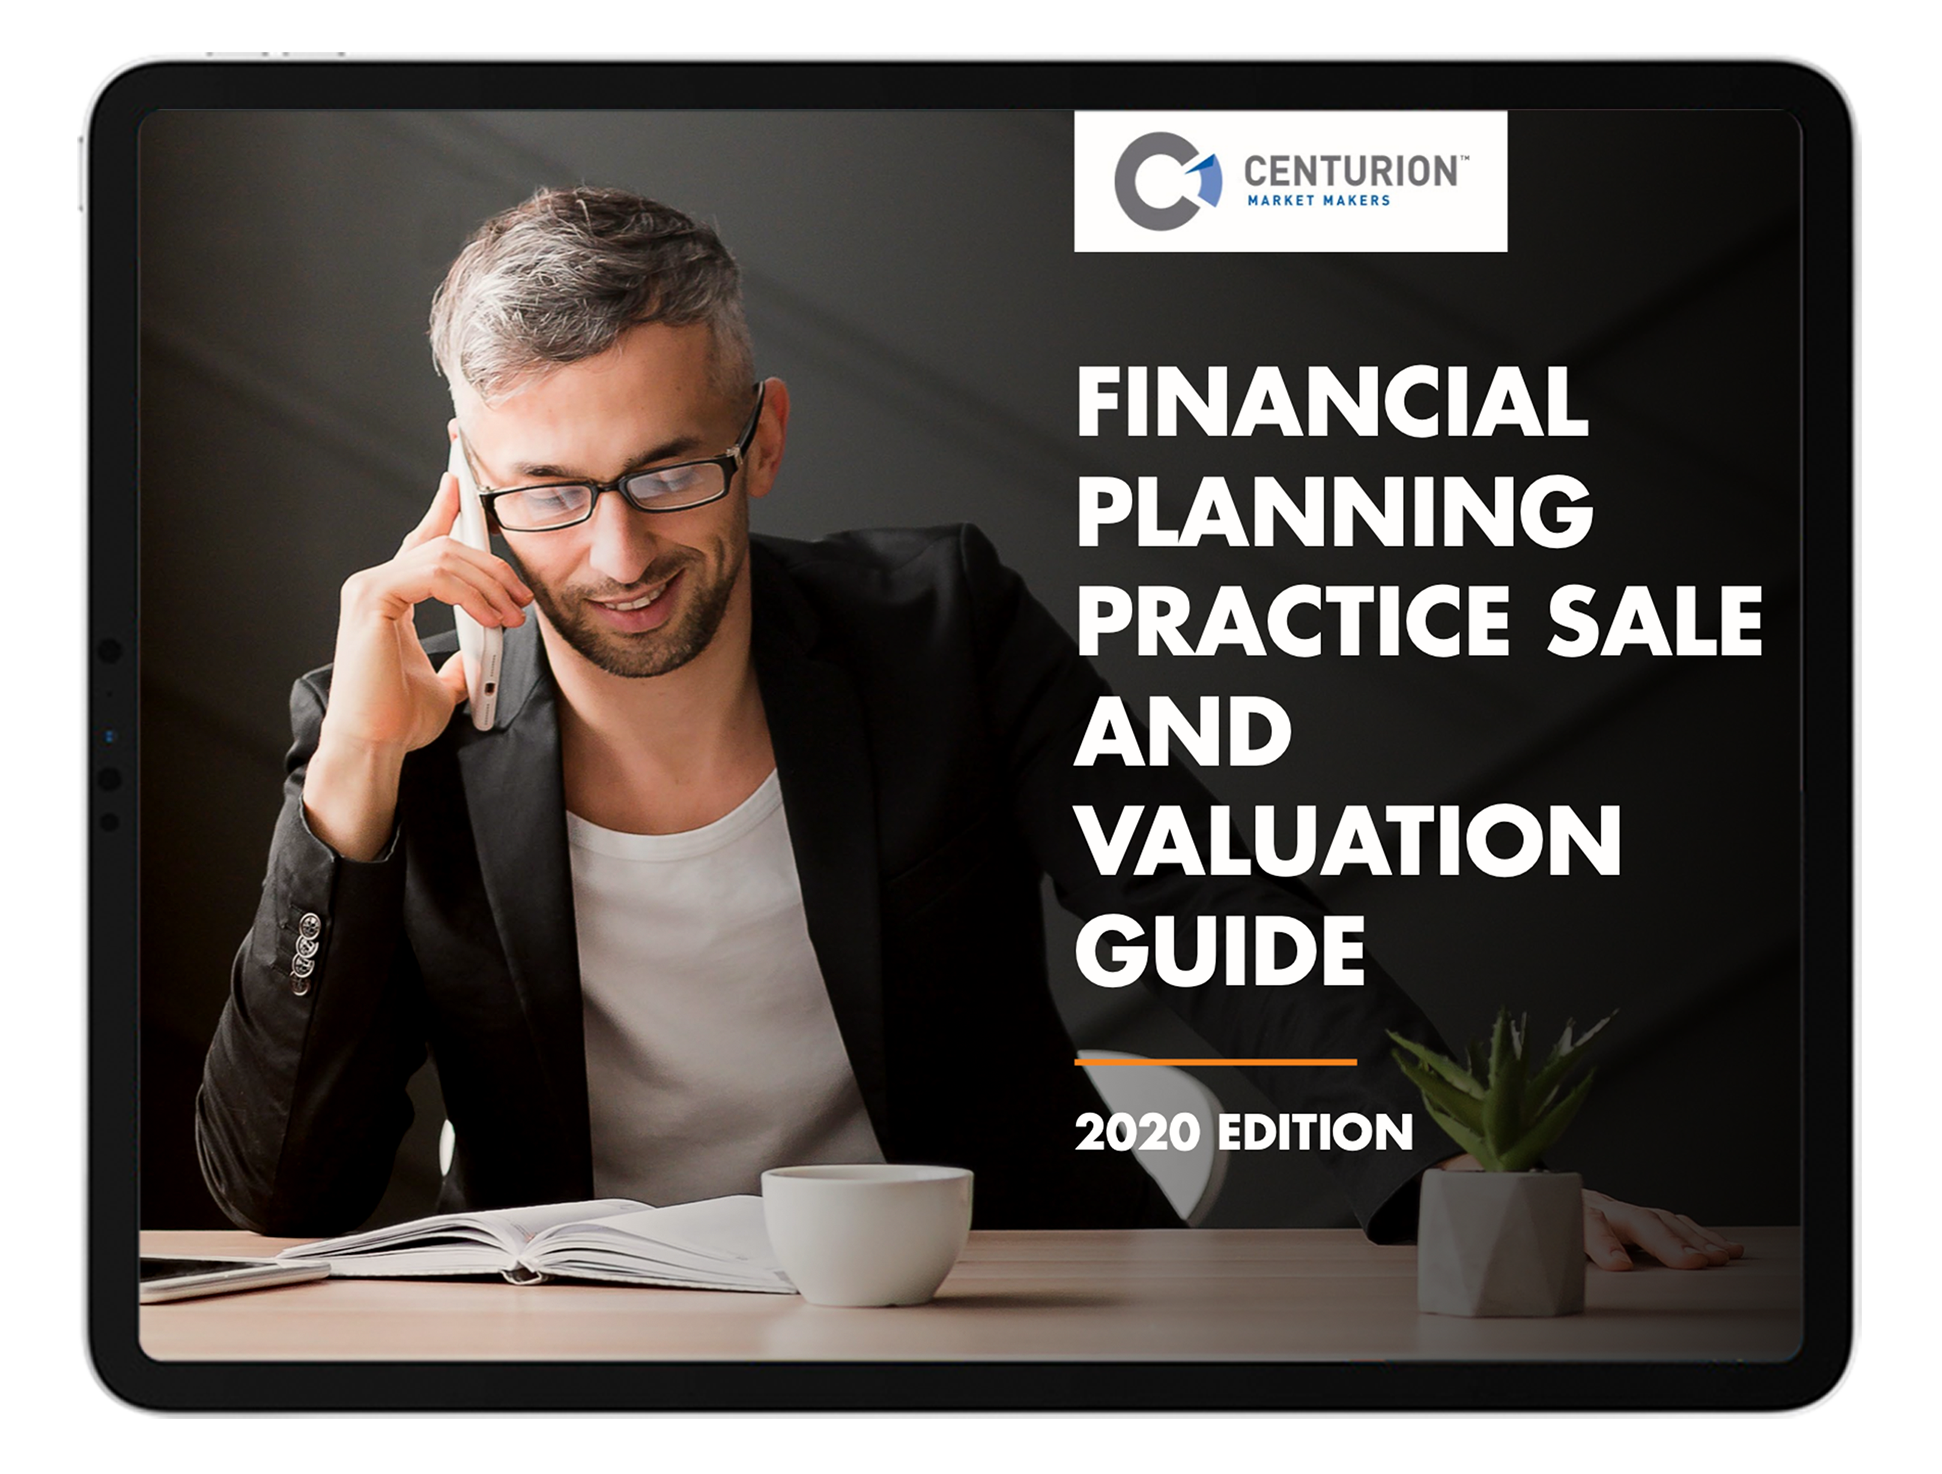 2020 Financial Planning Practice Sale and Valuation Guide | Centurion Market Makers